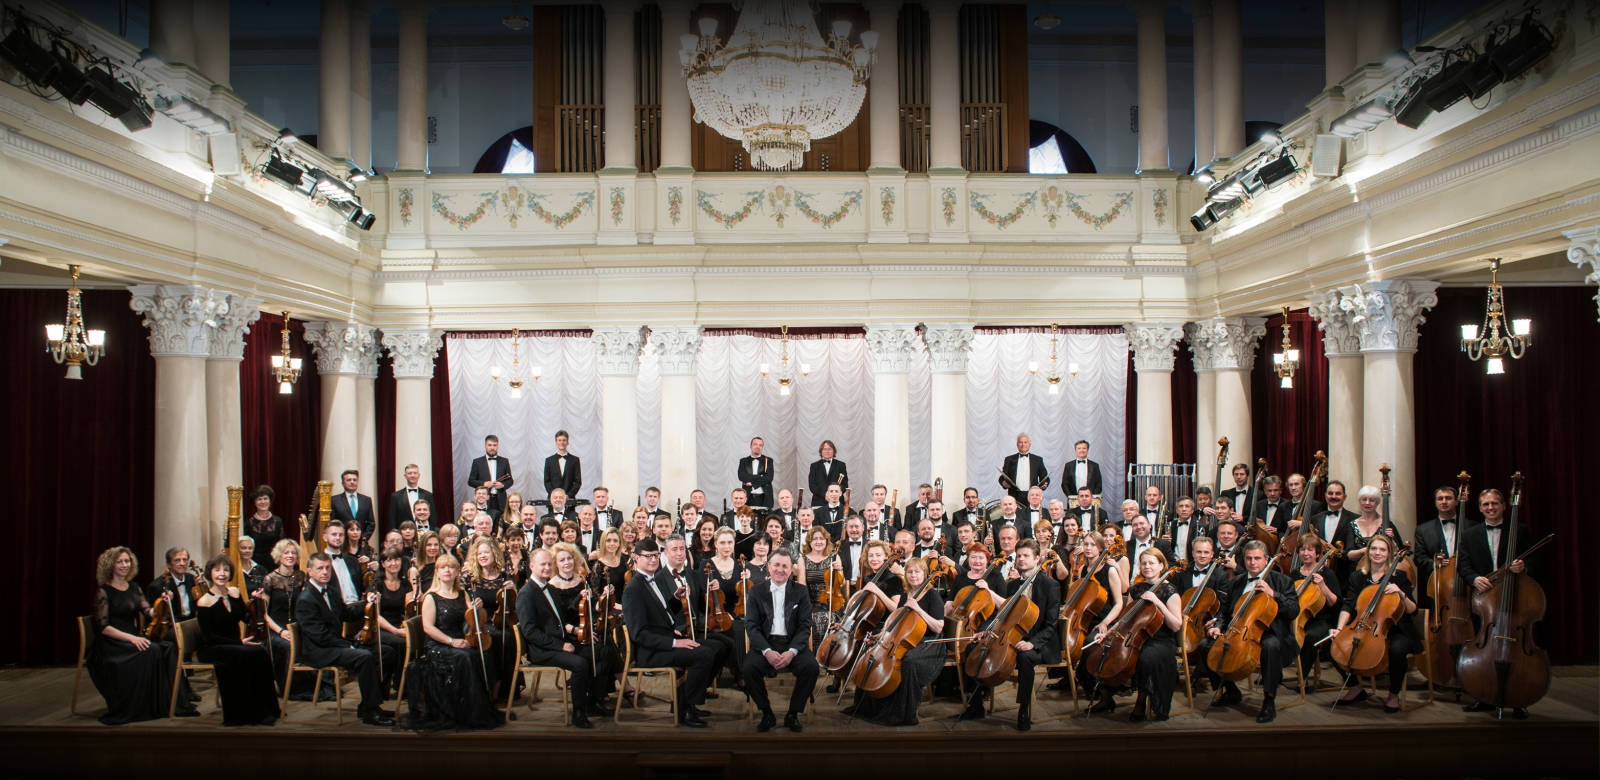 The National Symphony Orchestra of Ukraine - Orchestras